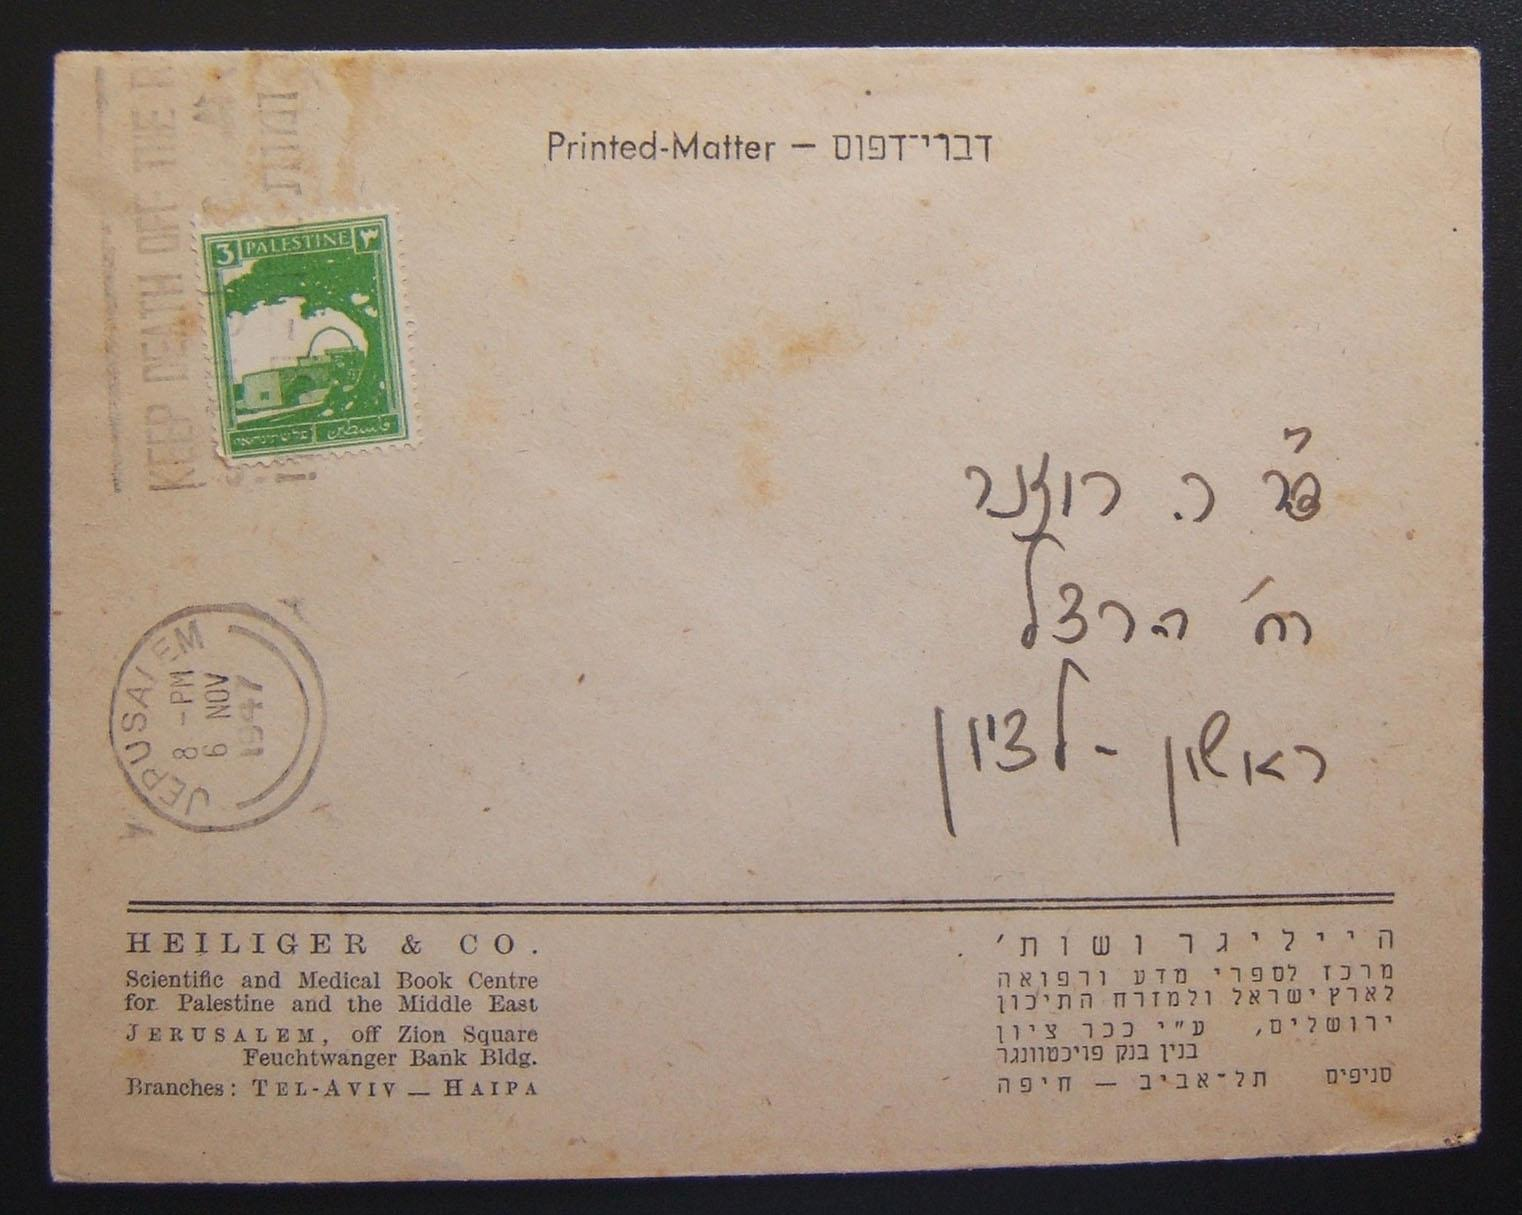 1947 Mandatory printed matter mail: 6 NOV 47 comm pm cv on store stationary ex J'LEM to RLZ franked 3m using Pictorals Ba91 tied by trilingual machine slogan cachet